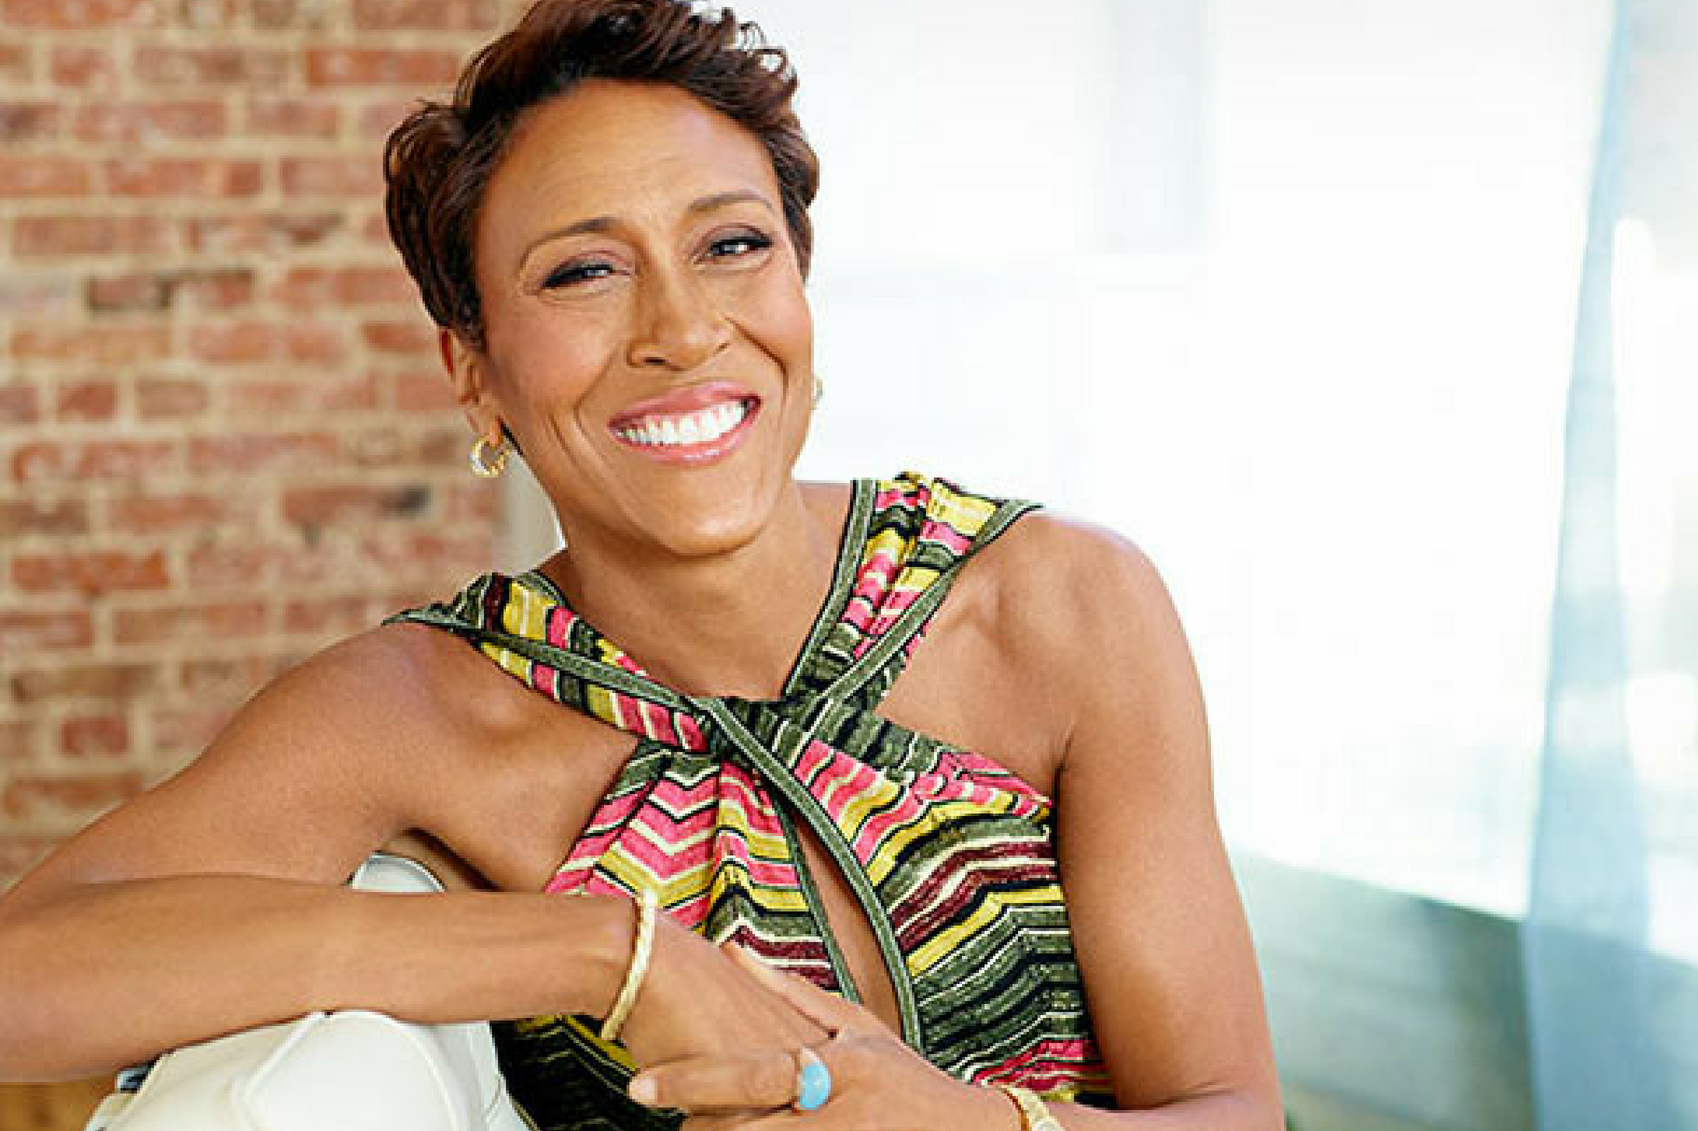 Robin Roberts is a familiar face to America as the longstanding co-anchor of Good Morning America. Her career began at ESPN where she appeared on Sports Center while occasionally contributing on Good Morning America. Roberts' importance to her fans was evident in 2011 when she to undergo treatment for a blood disorder causing her to take a two year hiatus from her position of Good Morning America. When she did return, though, the experience was emotional for both the show's staff and viewers.